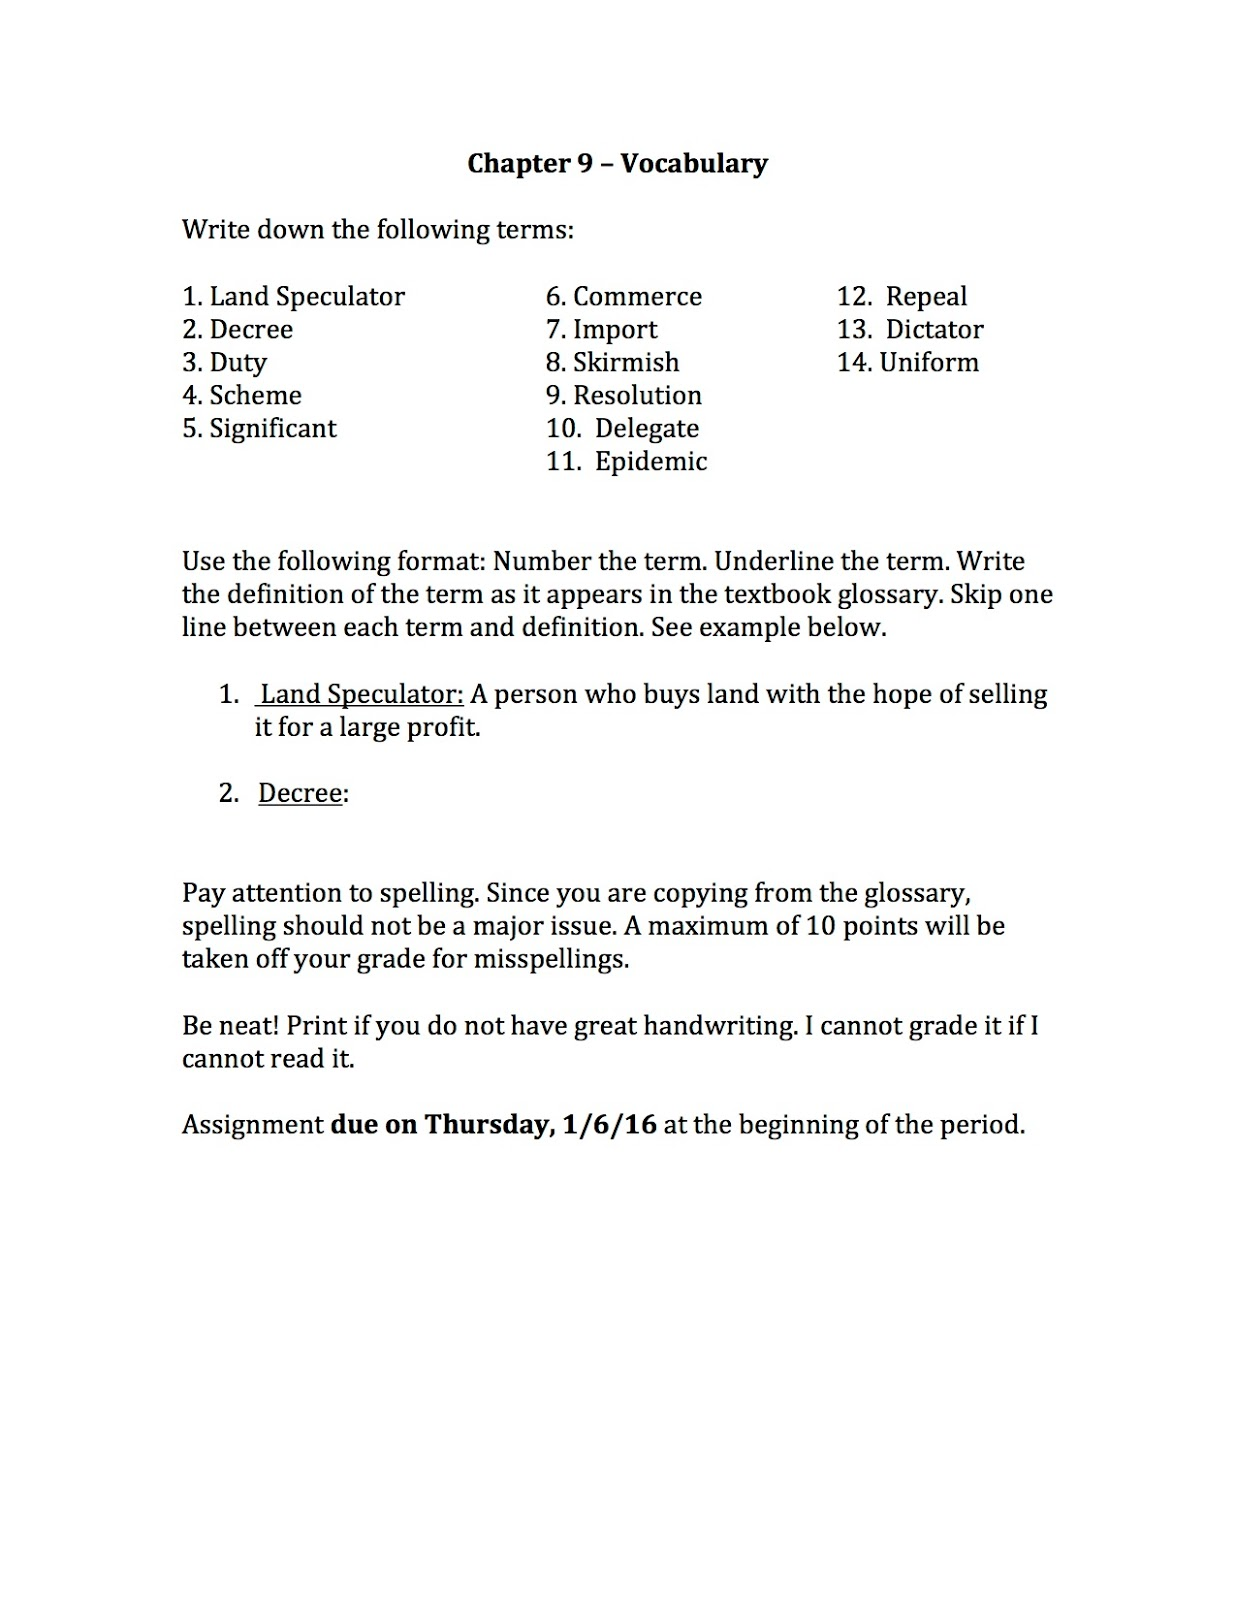 Active Reading Worksheet Chapter 9